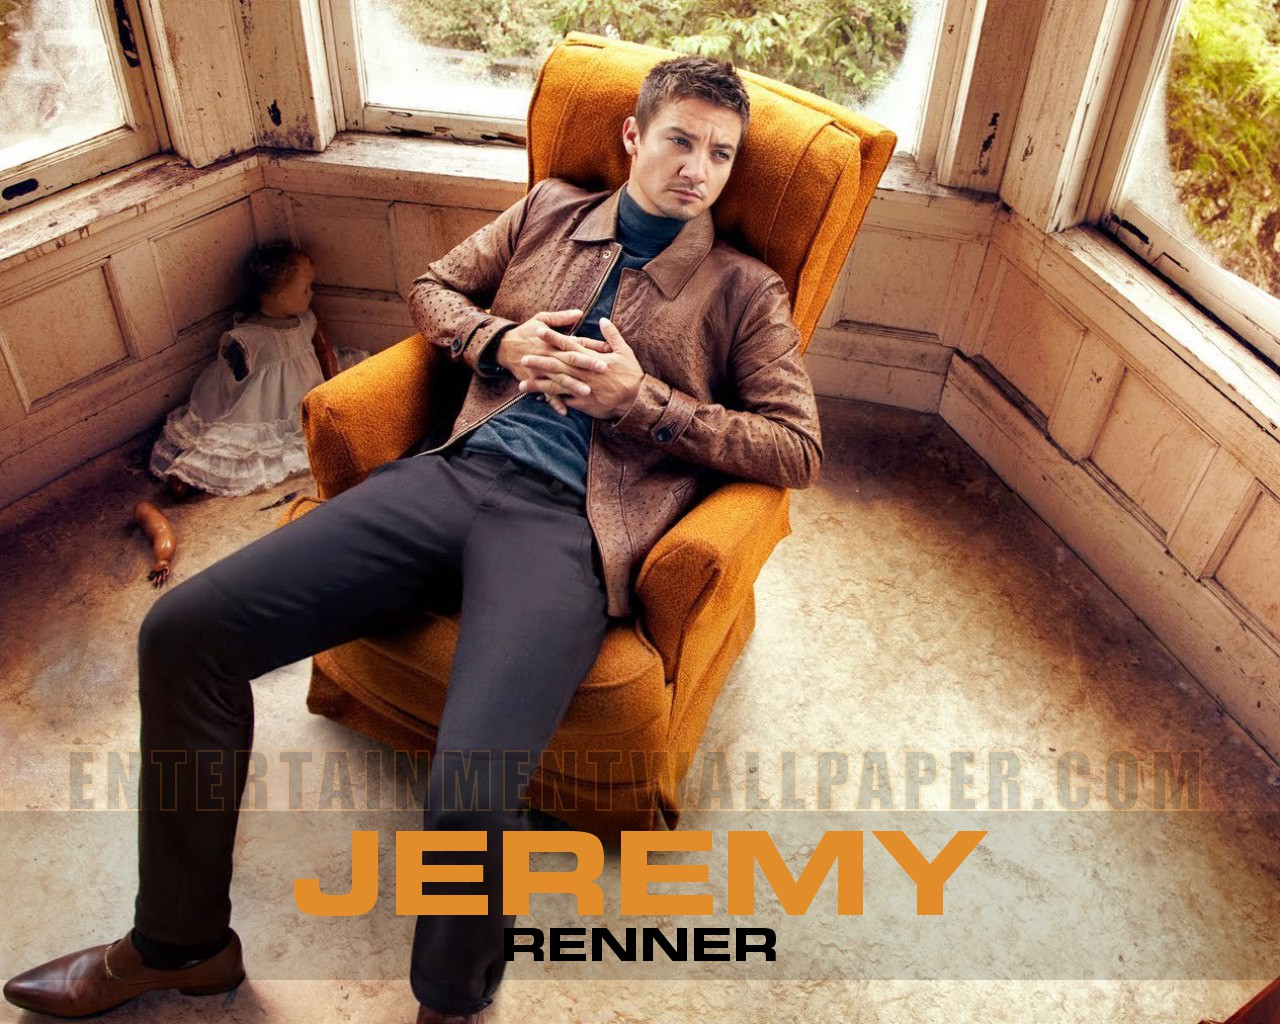 1280x1024 - Jeremy Renner Wallpapers 29